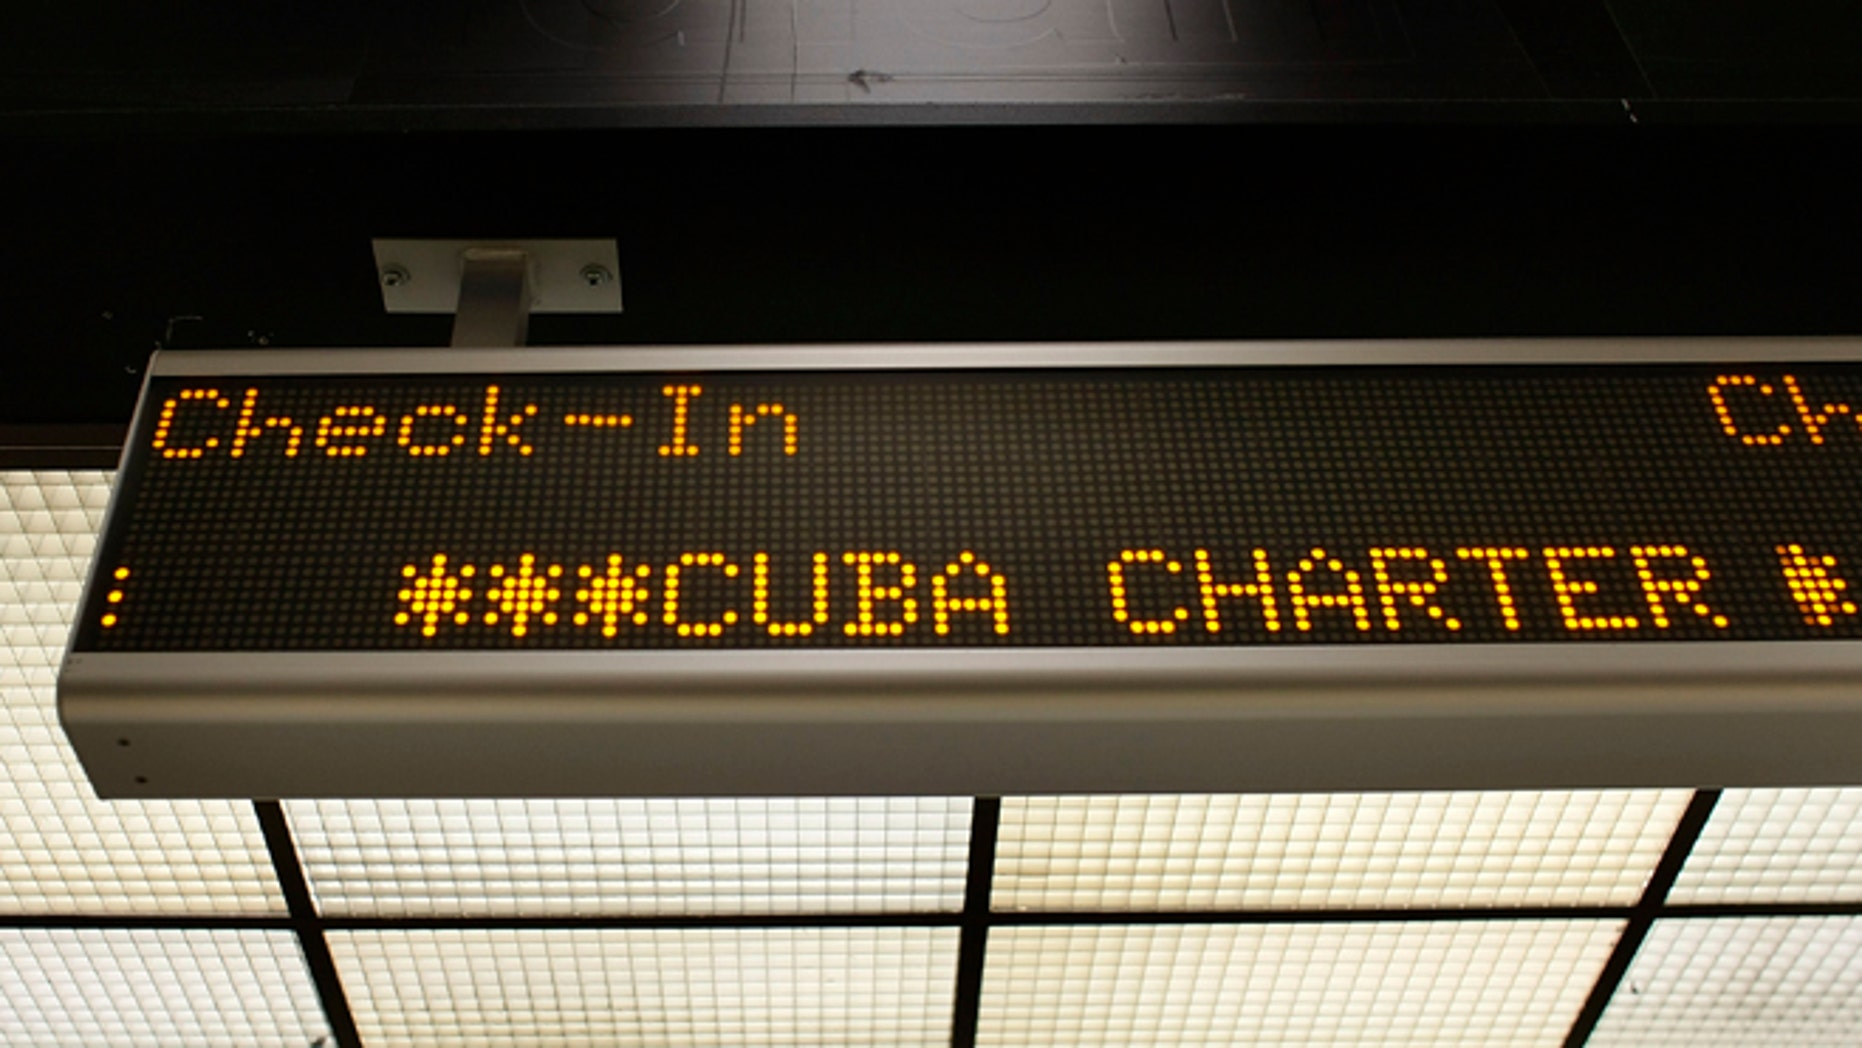 MIAMI - APRIL 07:  A check-in sign for the ABC Charter flight to Cuba is seen at Miami International Airport on April 7, 2009 in Miami, Florida. Reports indicate that U.S. President Barack Obama plans to loosen restrictions on family travel and remittances to Cuba.  (Photo by Joe Raedle/Getty Images)